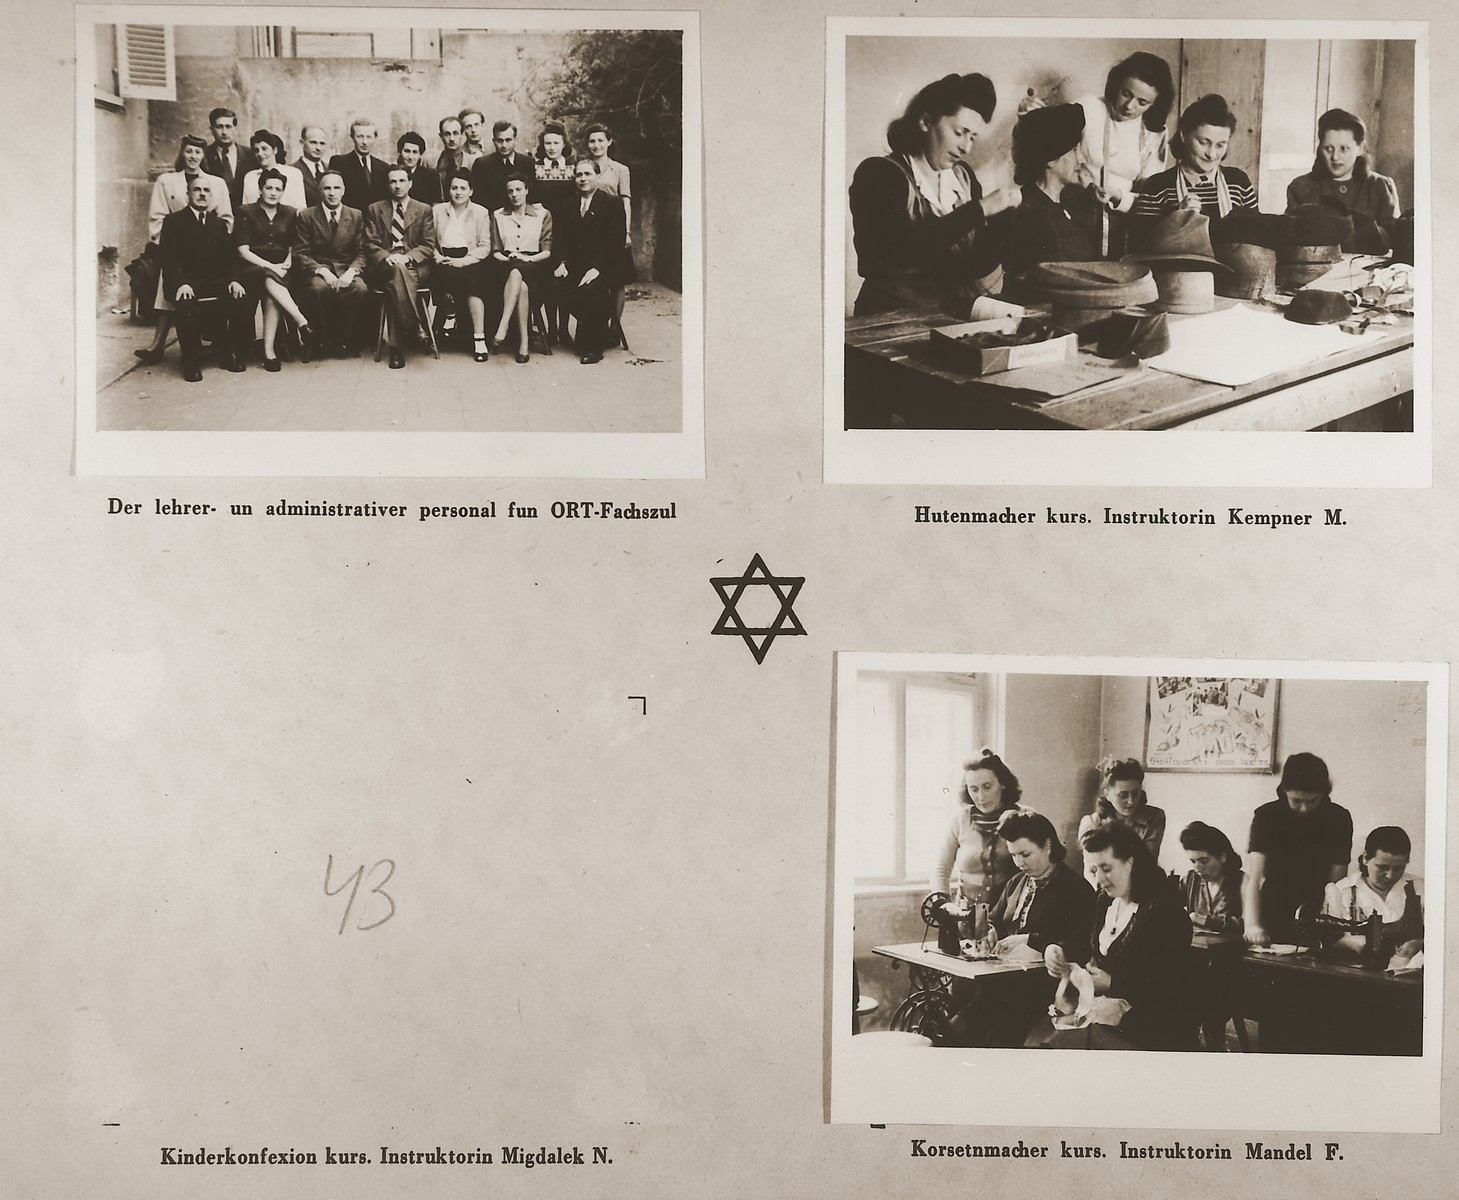 """Three images of the faculty, students and classes at the ORT vocational training school in the Stuttgart DP camp.  Among those pictured are M. Kempner and F. Mandel.  One page from the Stuttgart Jewish DP camp album entitled, """"Jidiszer D.P. Center UNRRA--P.C.IRO in Stuttgart,"""" compiled and photographed by Alexander Fiedel and dedicated to Moses Kornberg, head of the commissary."""